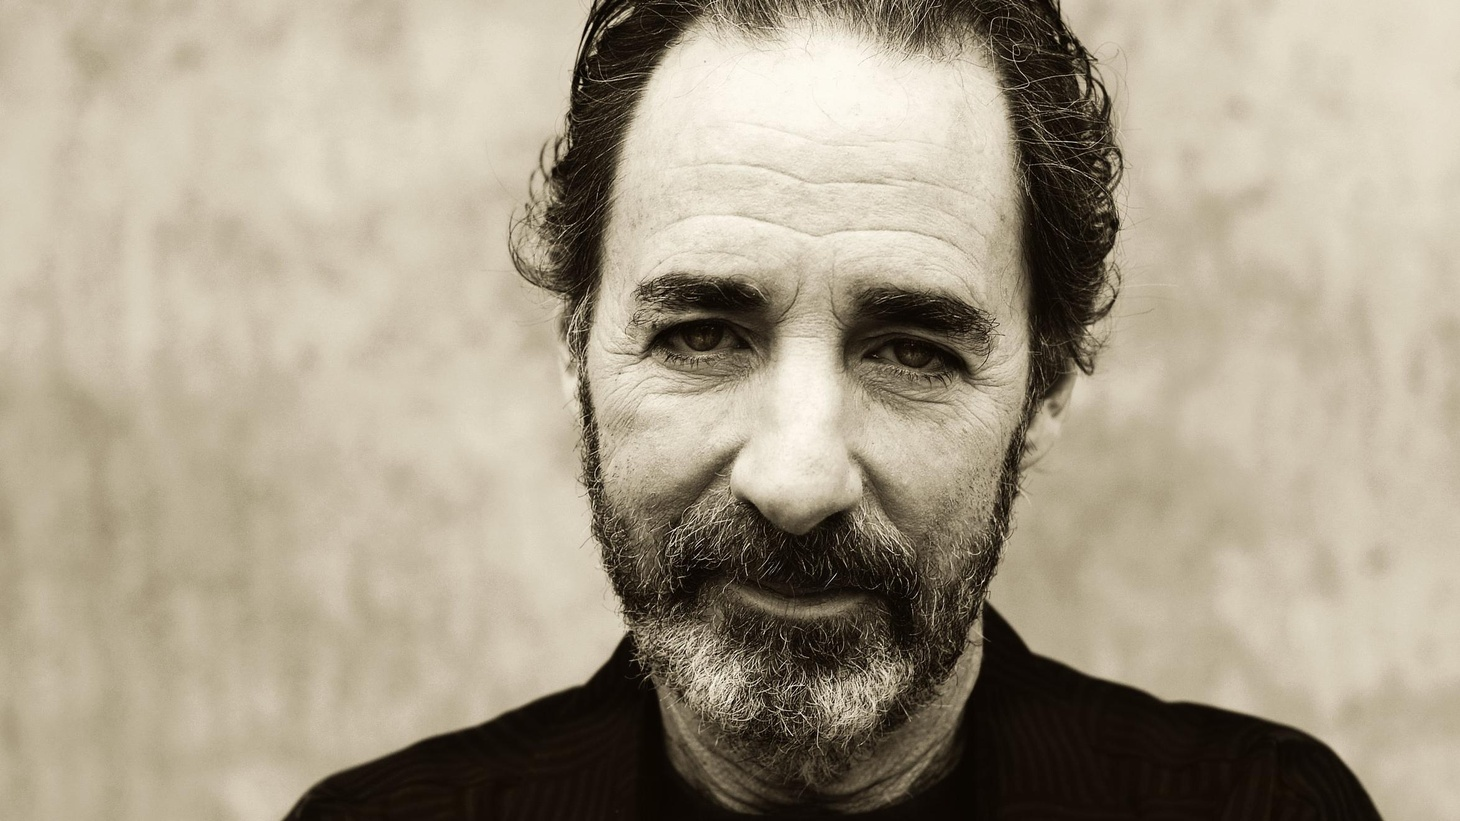 Harry Shearer explores the sounds of New Orleans with Tom McDermott and Evan Christopher.